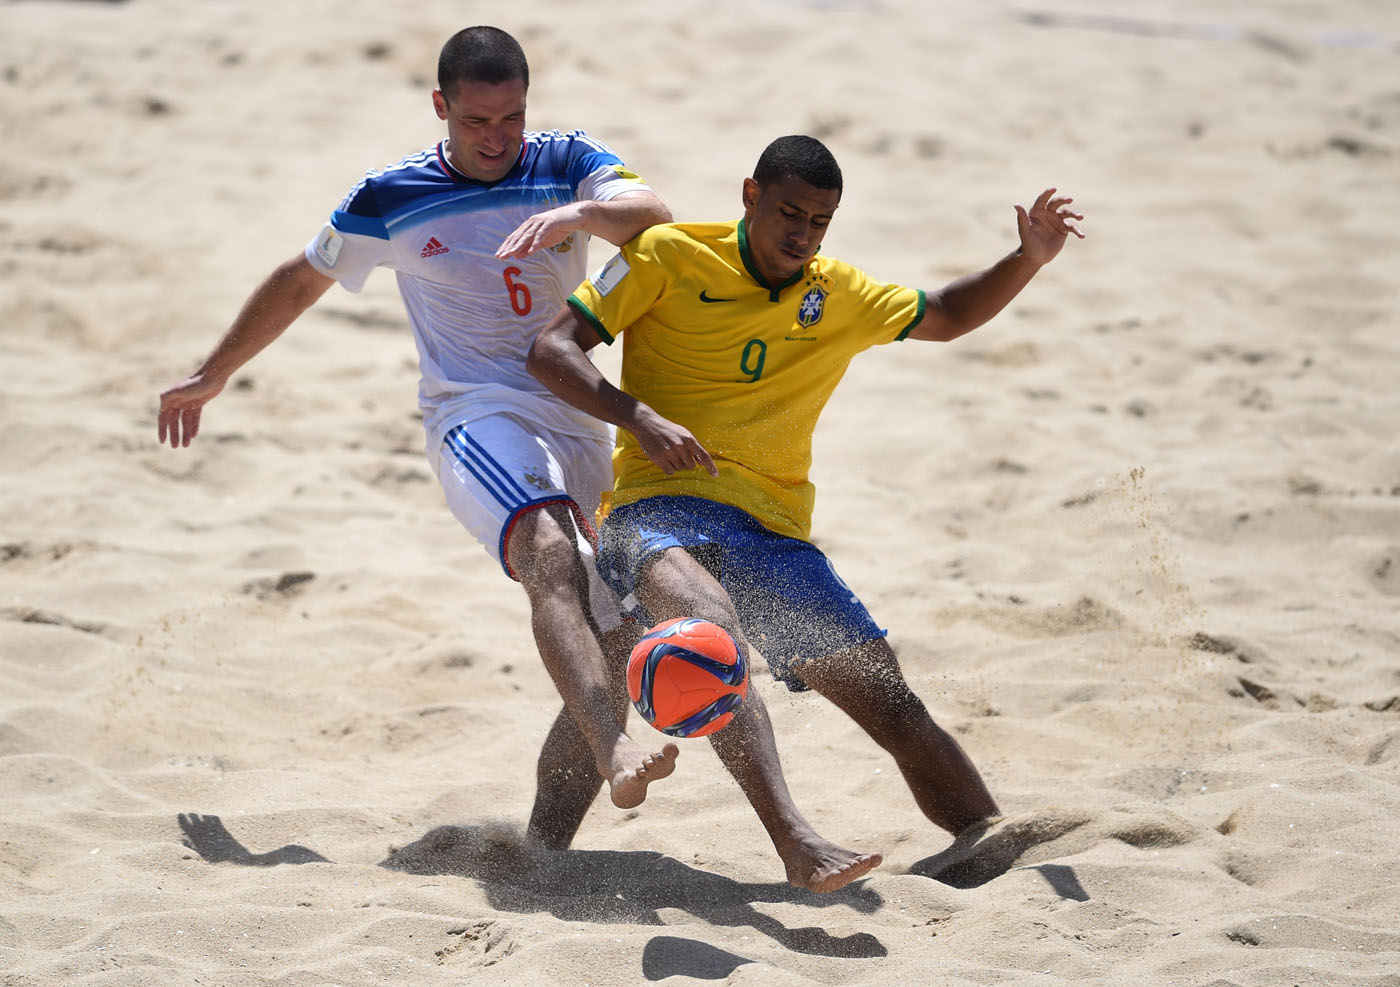 beach football world cup